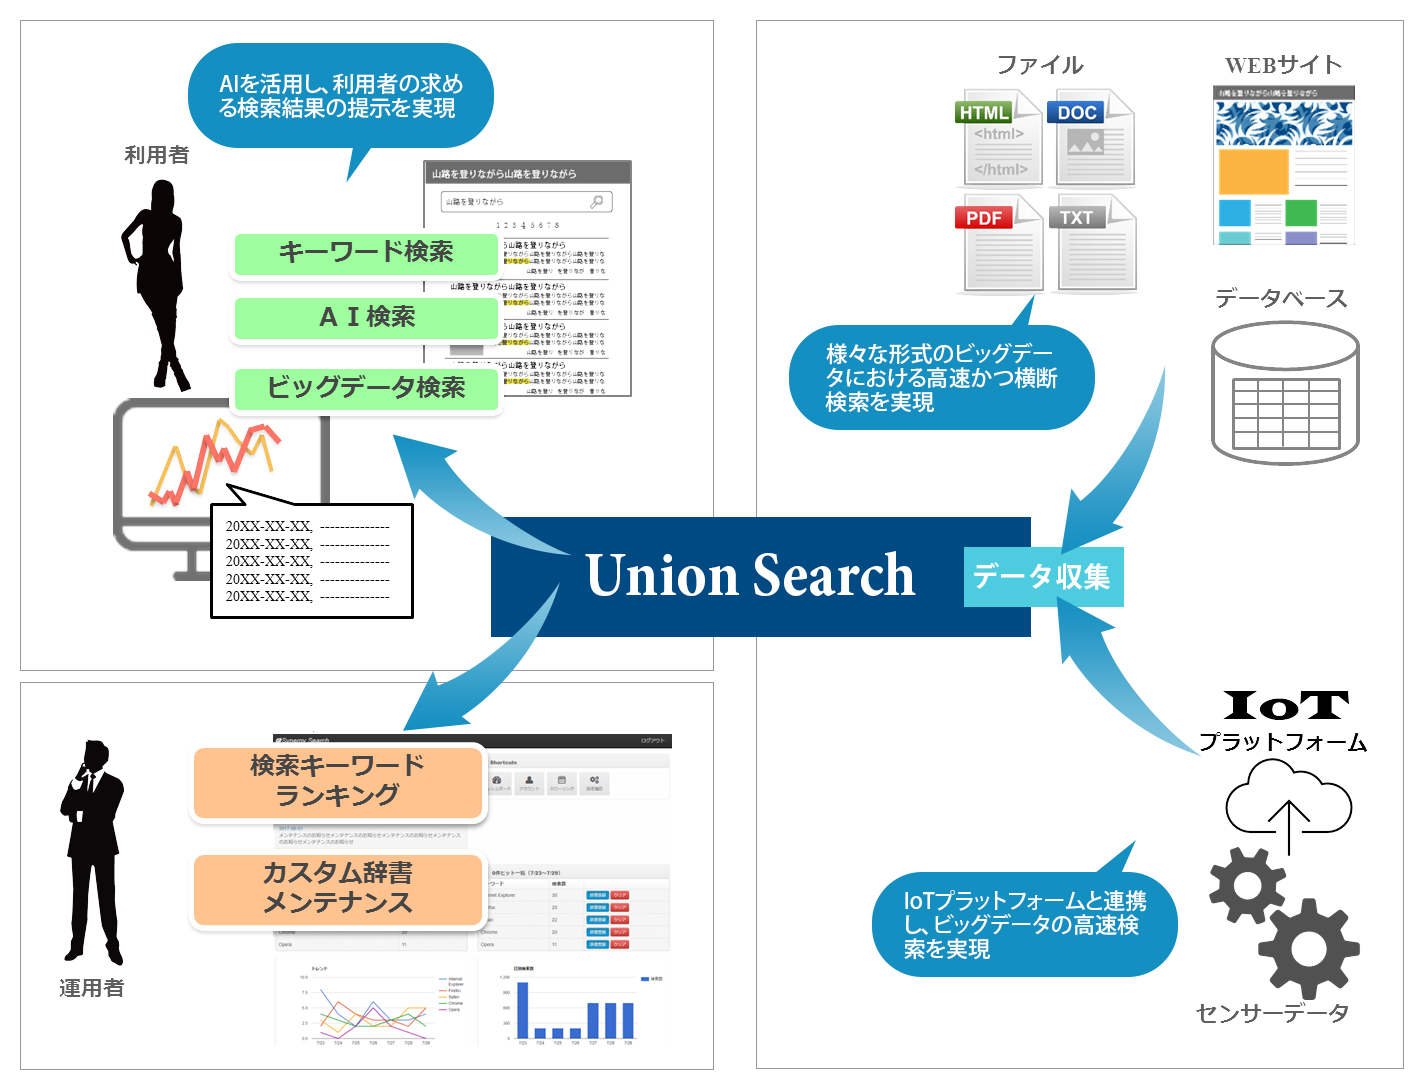 20180129_Union Search_gaiyo.jpg